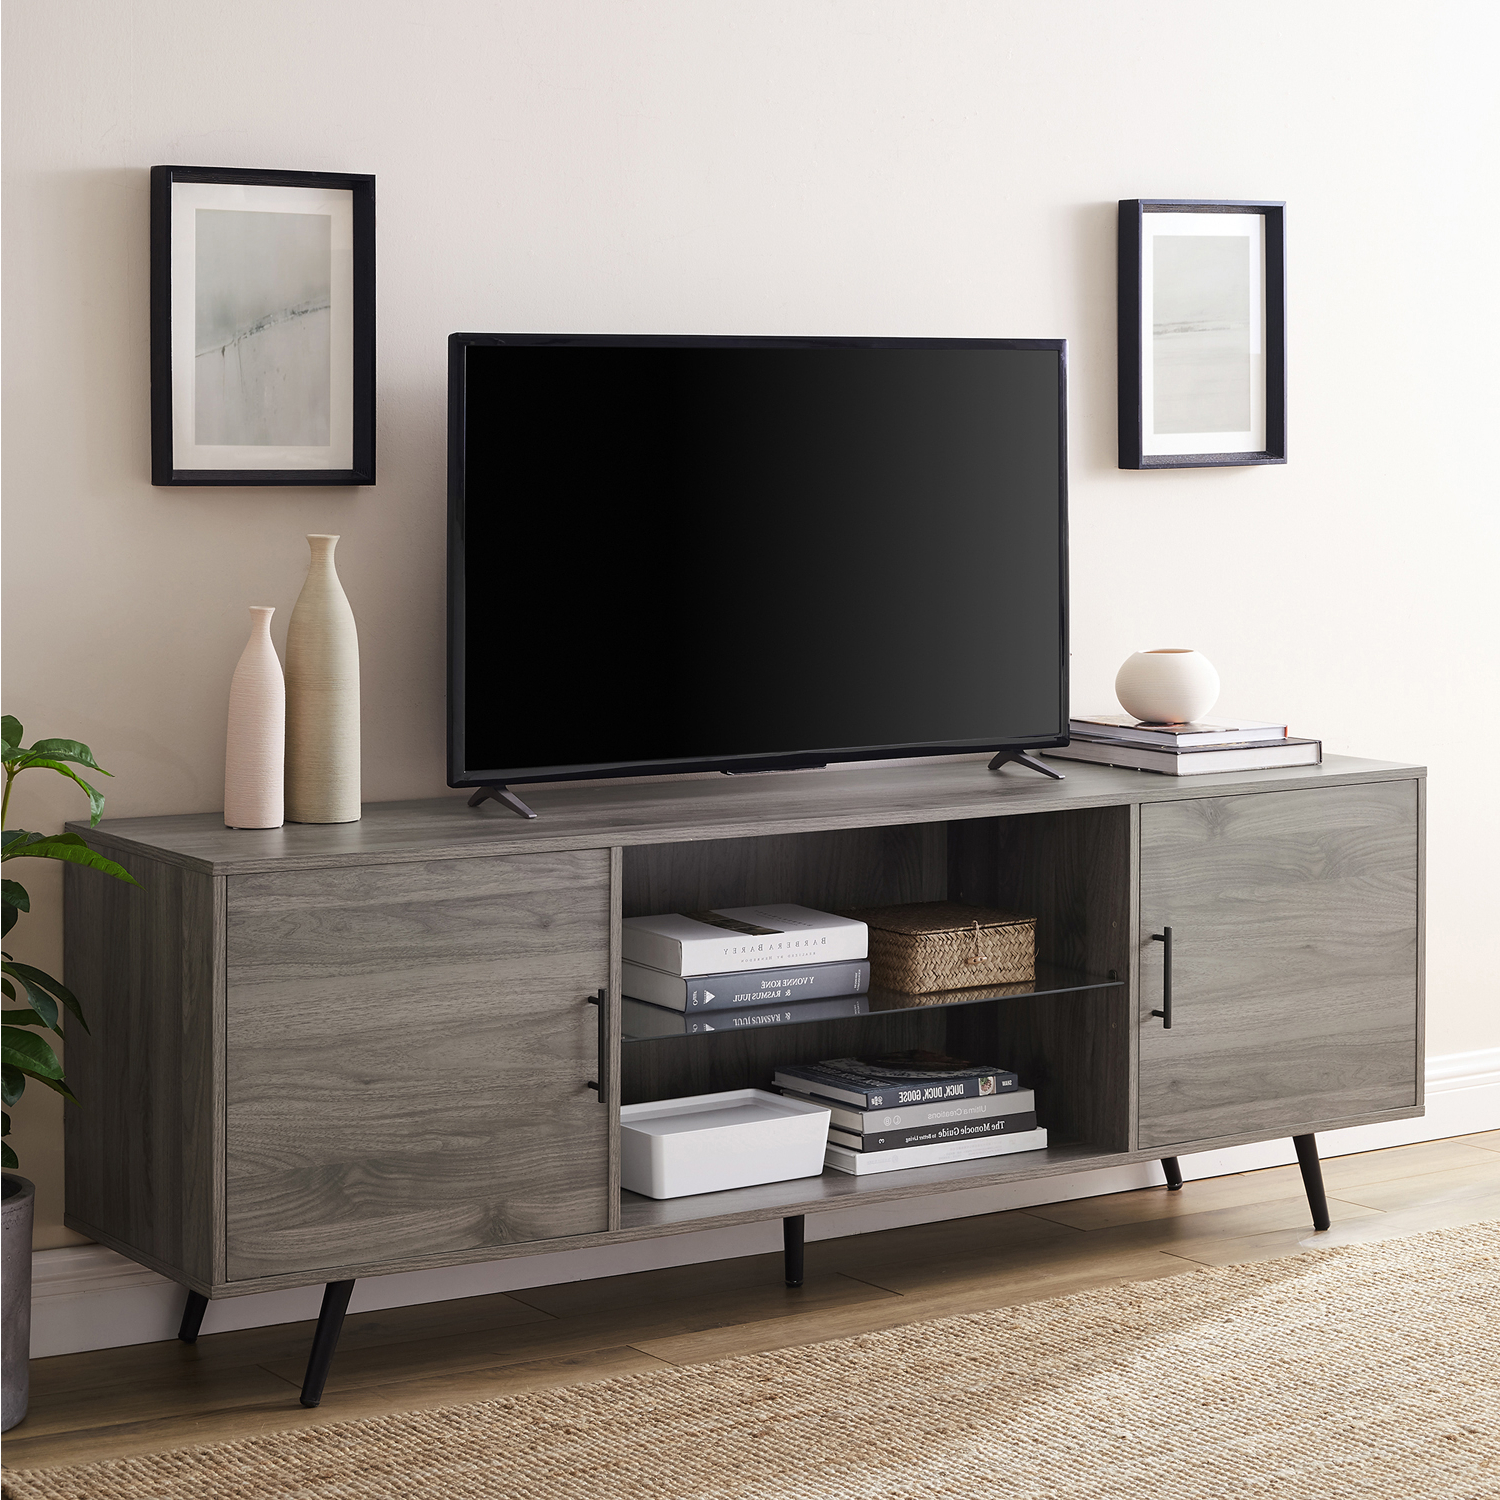 Wide Tv Stand With Glass Shelf – Pier1 Throughout Indi Wide Tv Stands (View 8 of 20)